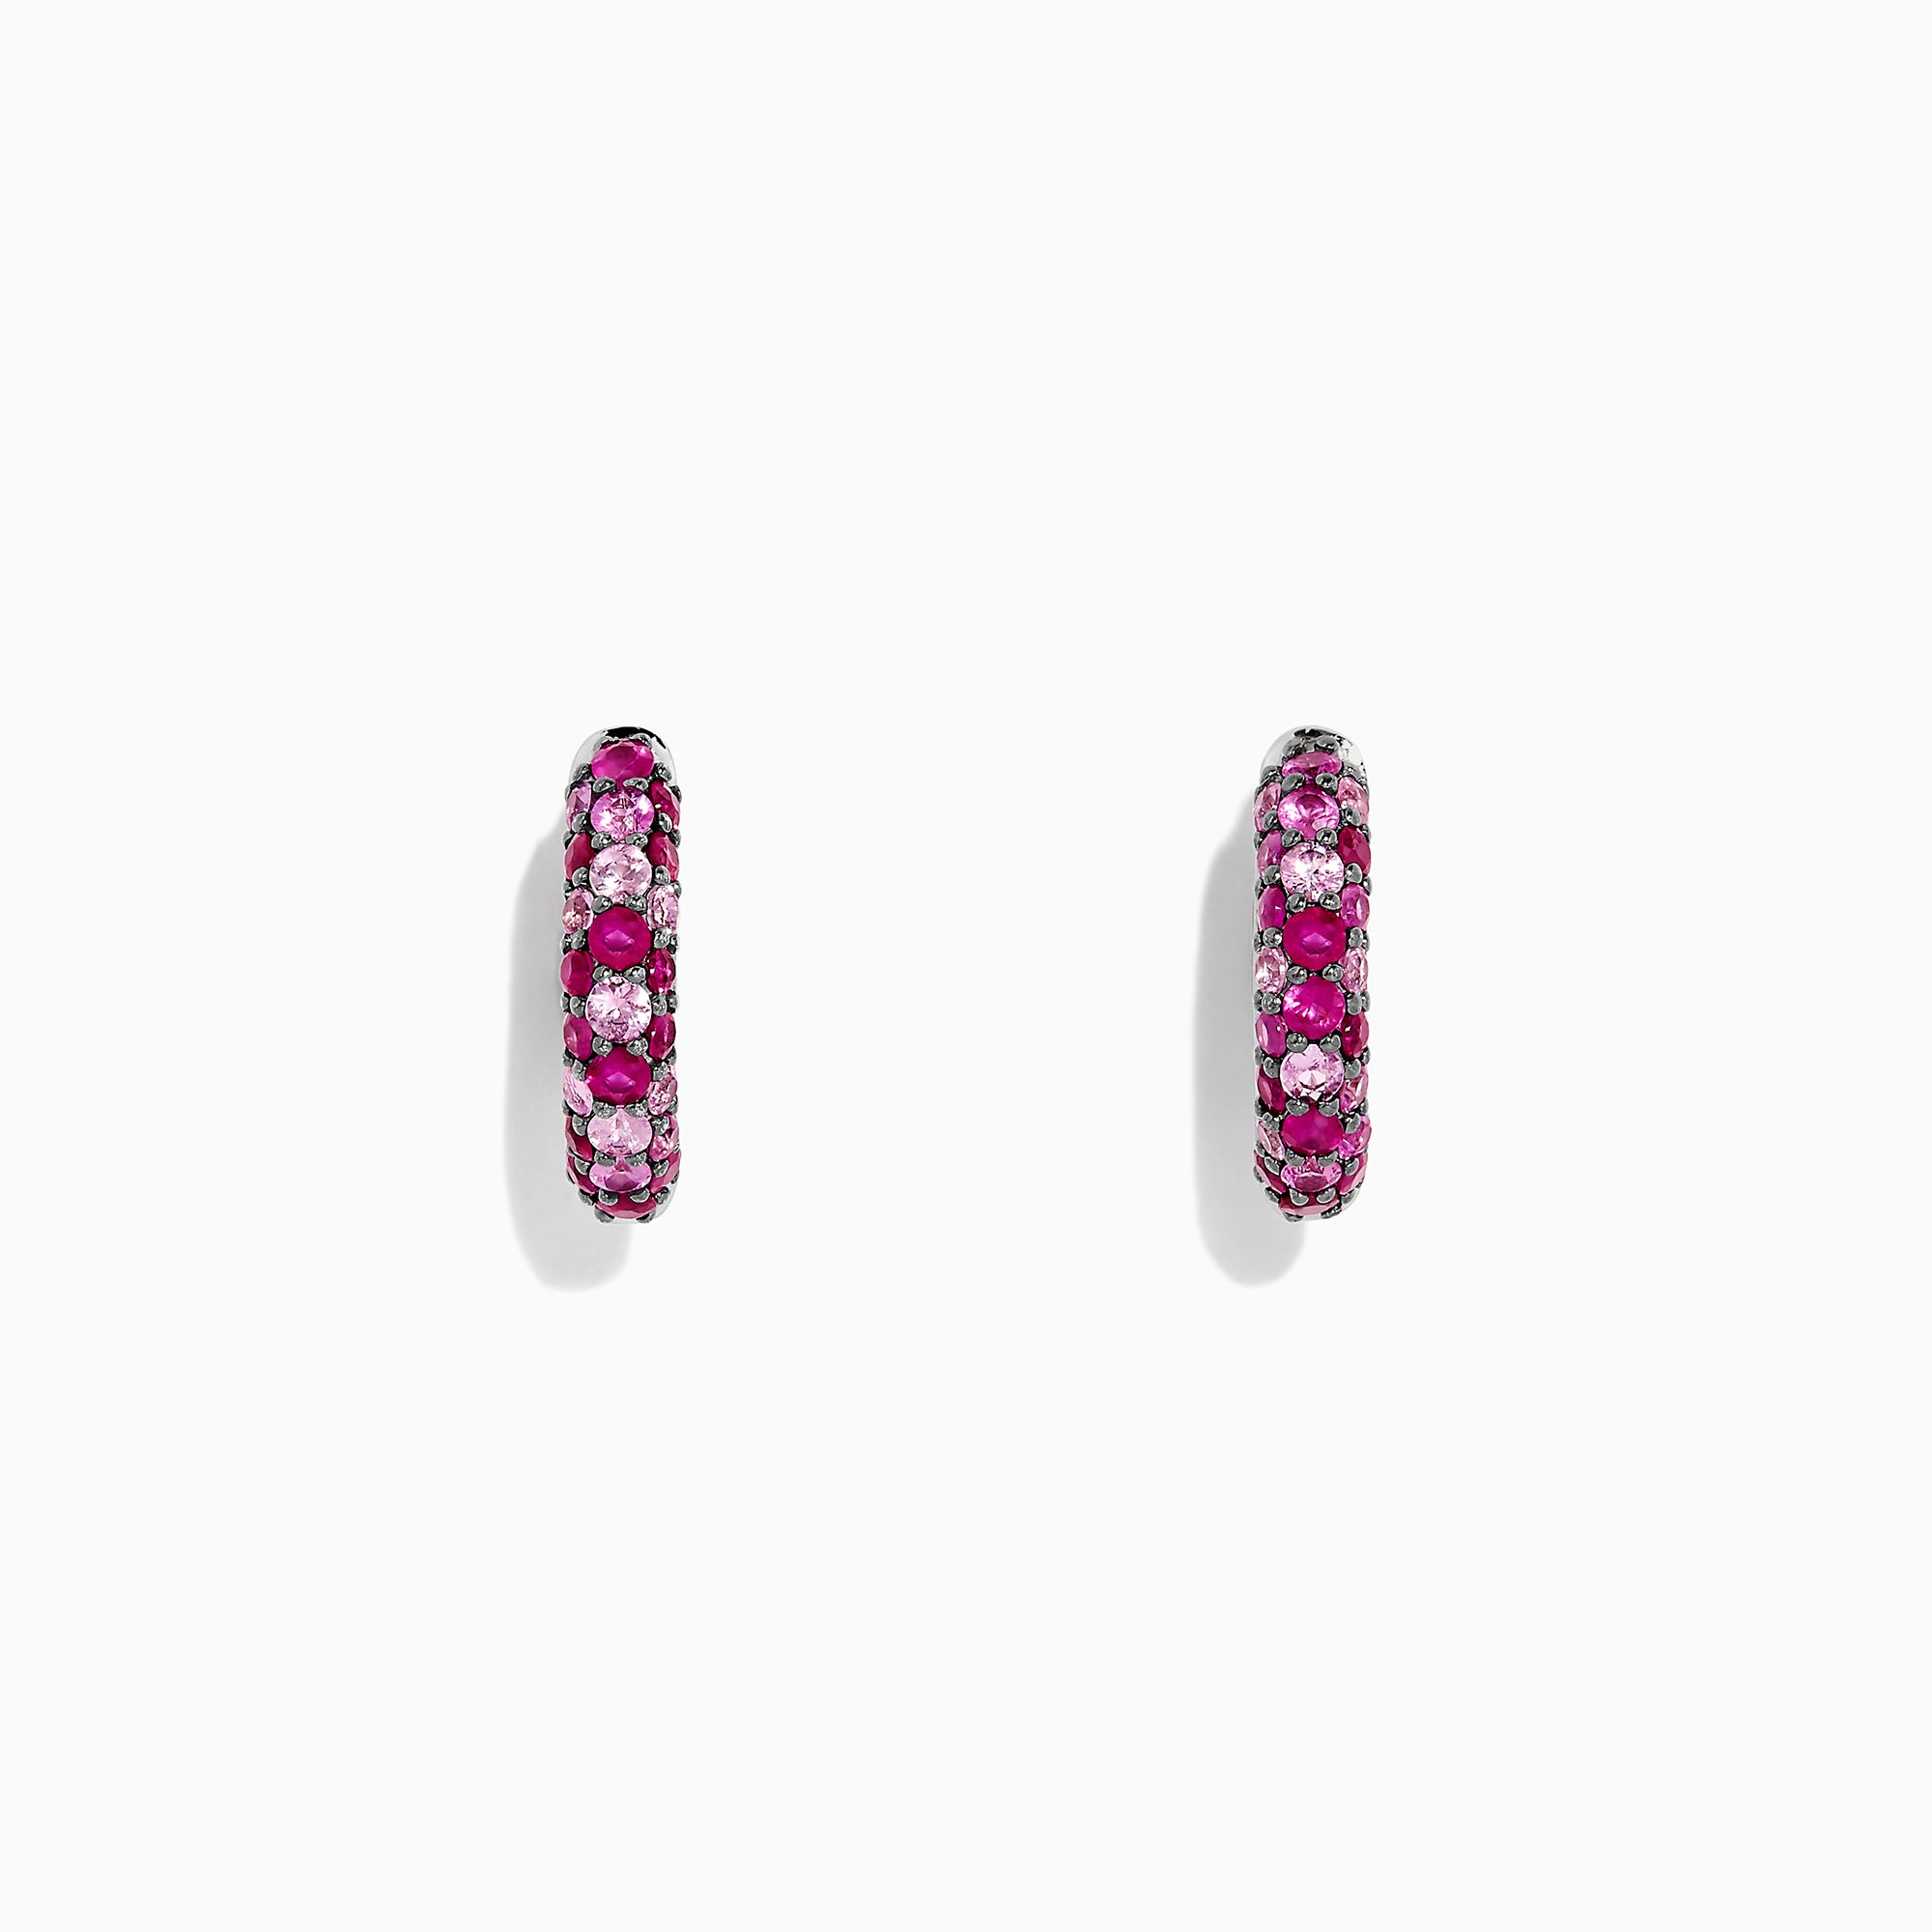 Effy 925 Sterling Silver Pink Sapphire Splash Small Hoop Earrings, 1.80 TCW